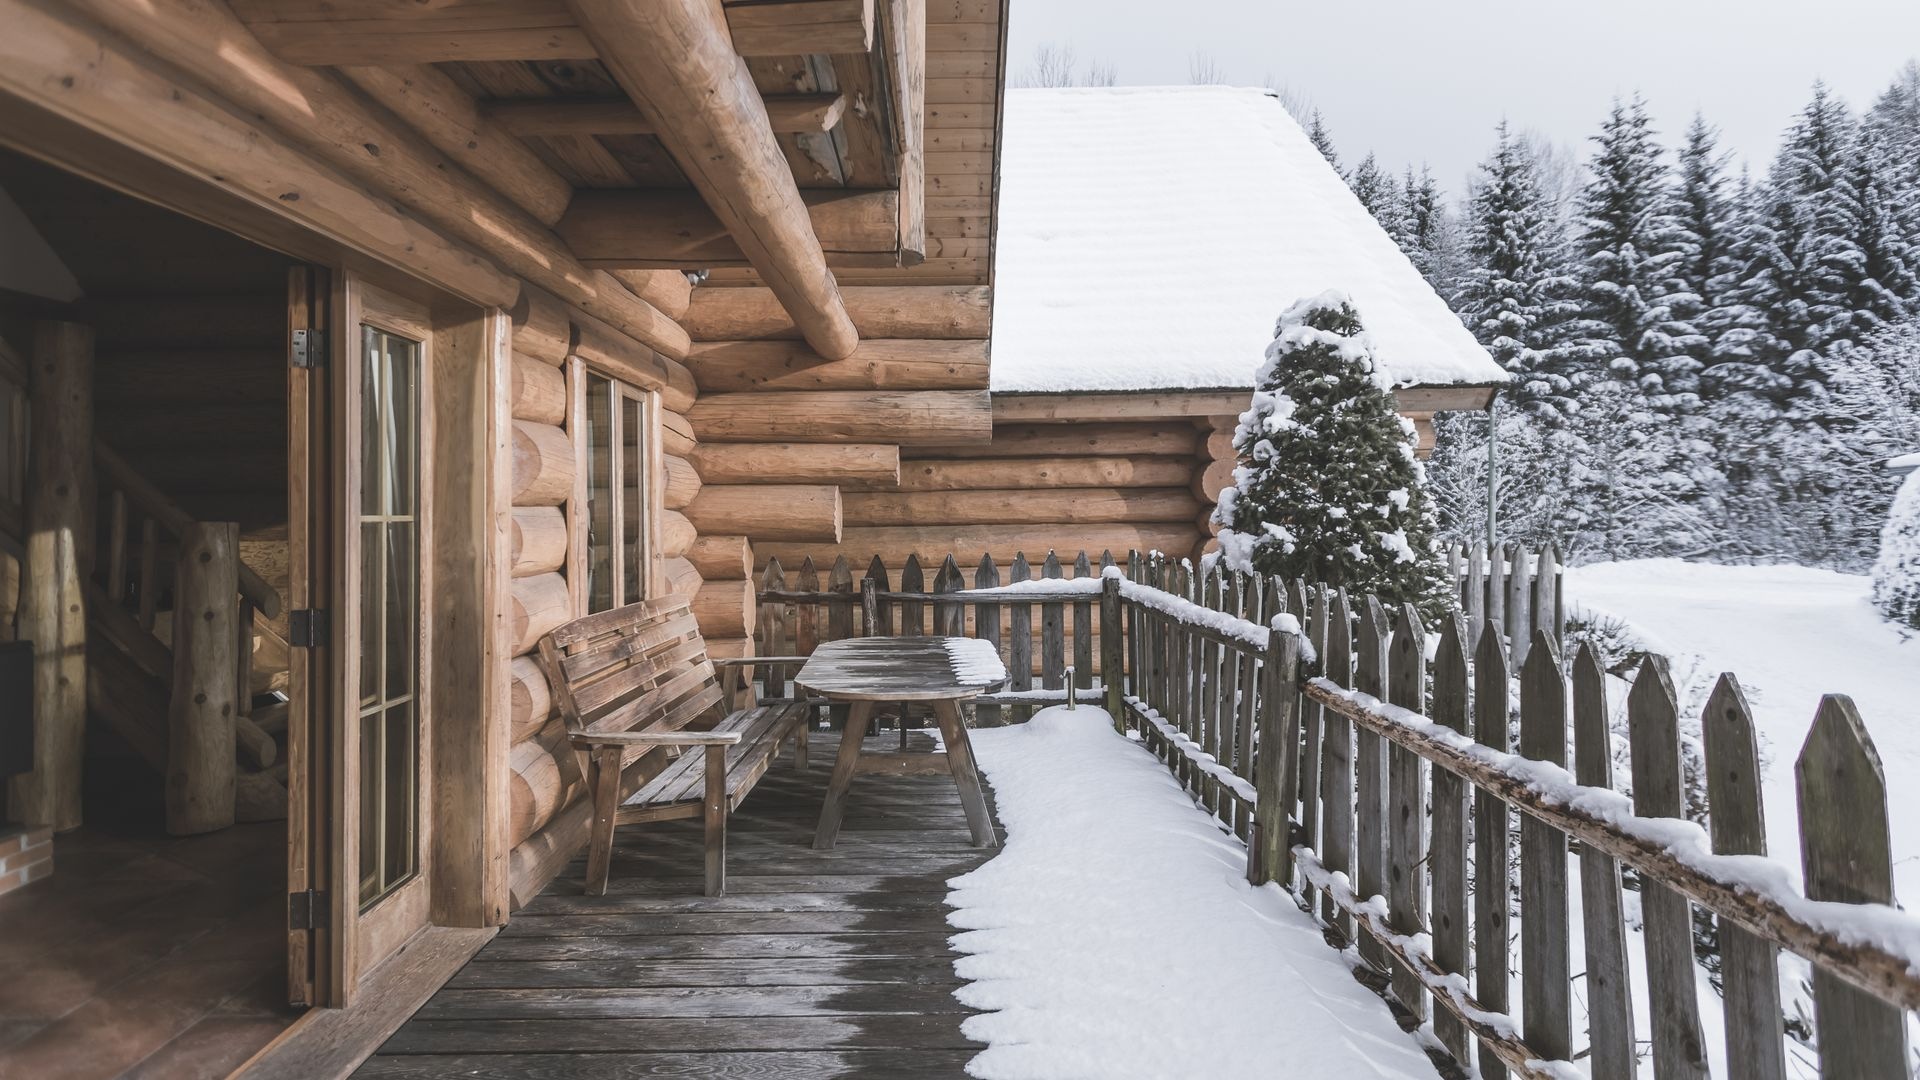 Camping Chalet Dolomiten Winter